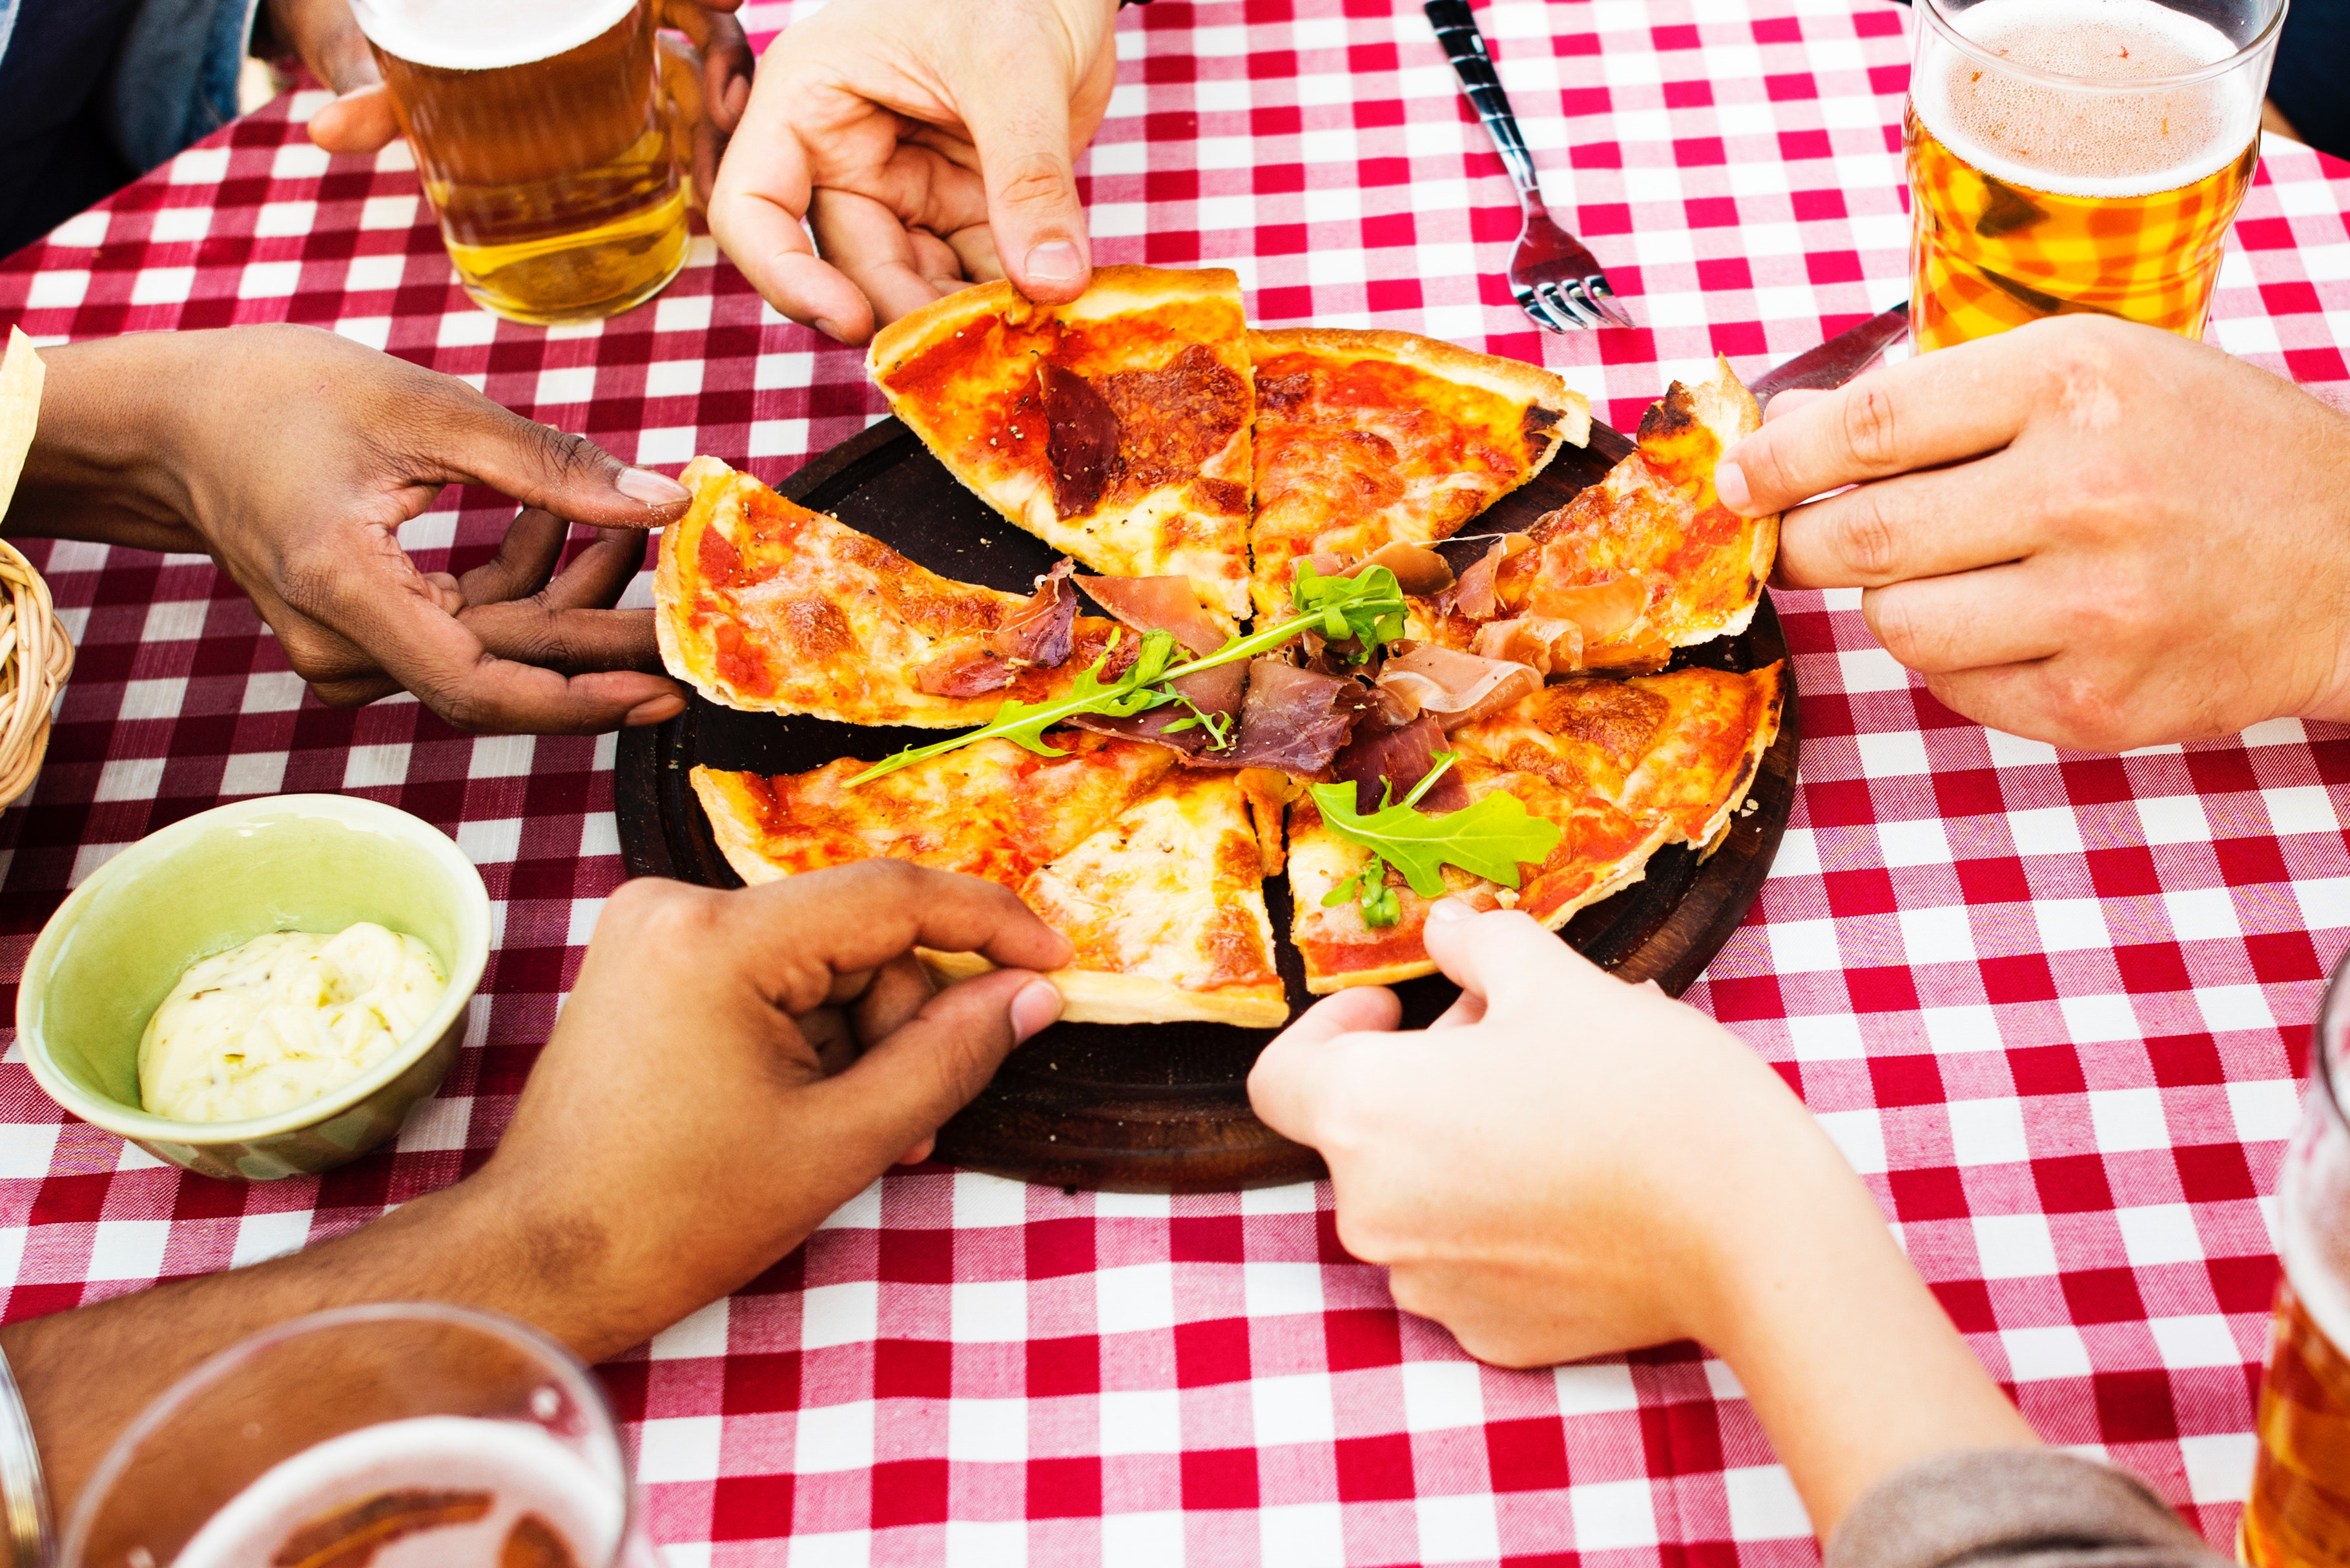 people sharing a pizza with beer